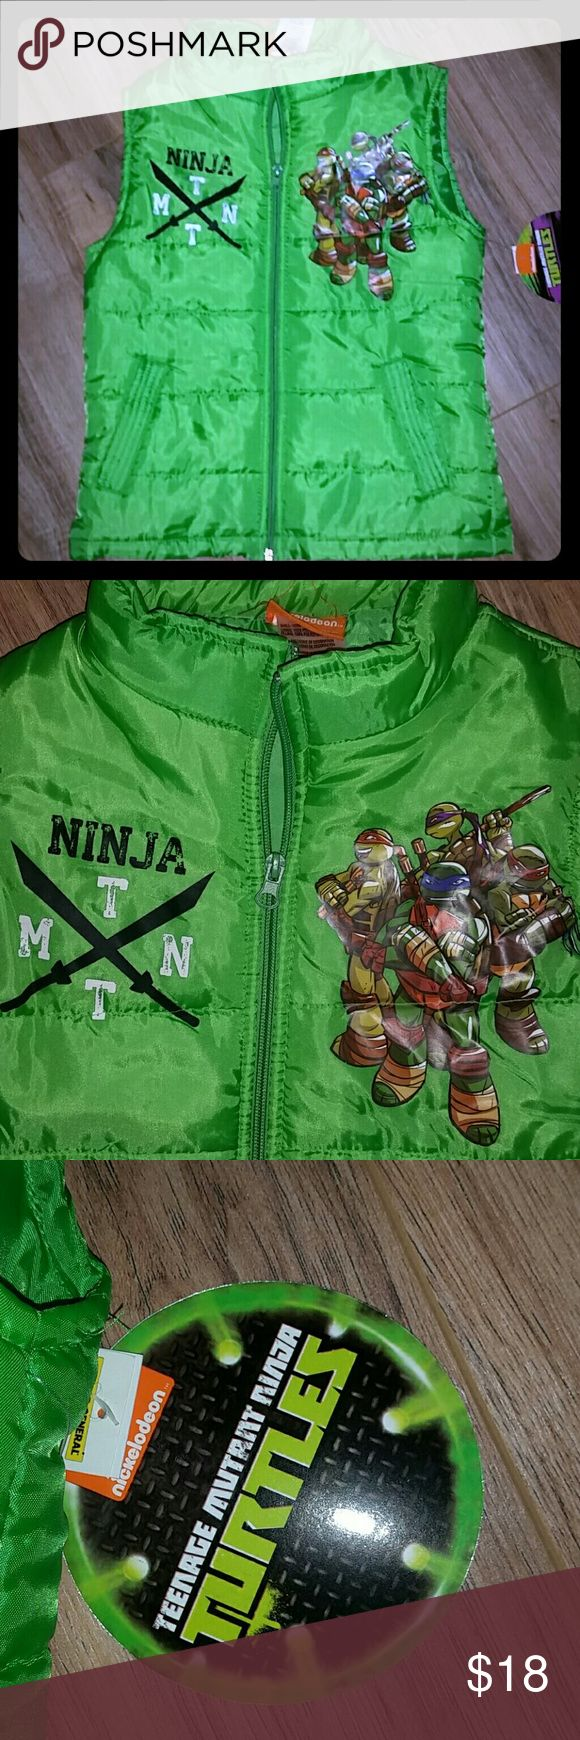 Nwt sz 7 puffy vest jacket Teenage Mutant ninja Teenage Mutant ninja turtles vest zipper jacket. Size 7 boys. Front pockets. Great for Fall. Nickelodeon Jackets & Coats Puffers